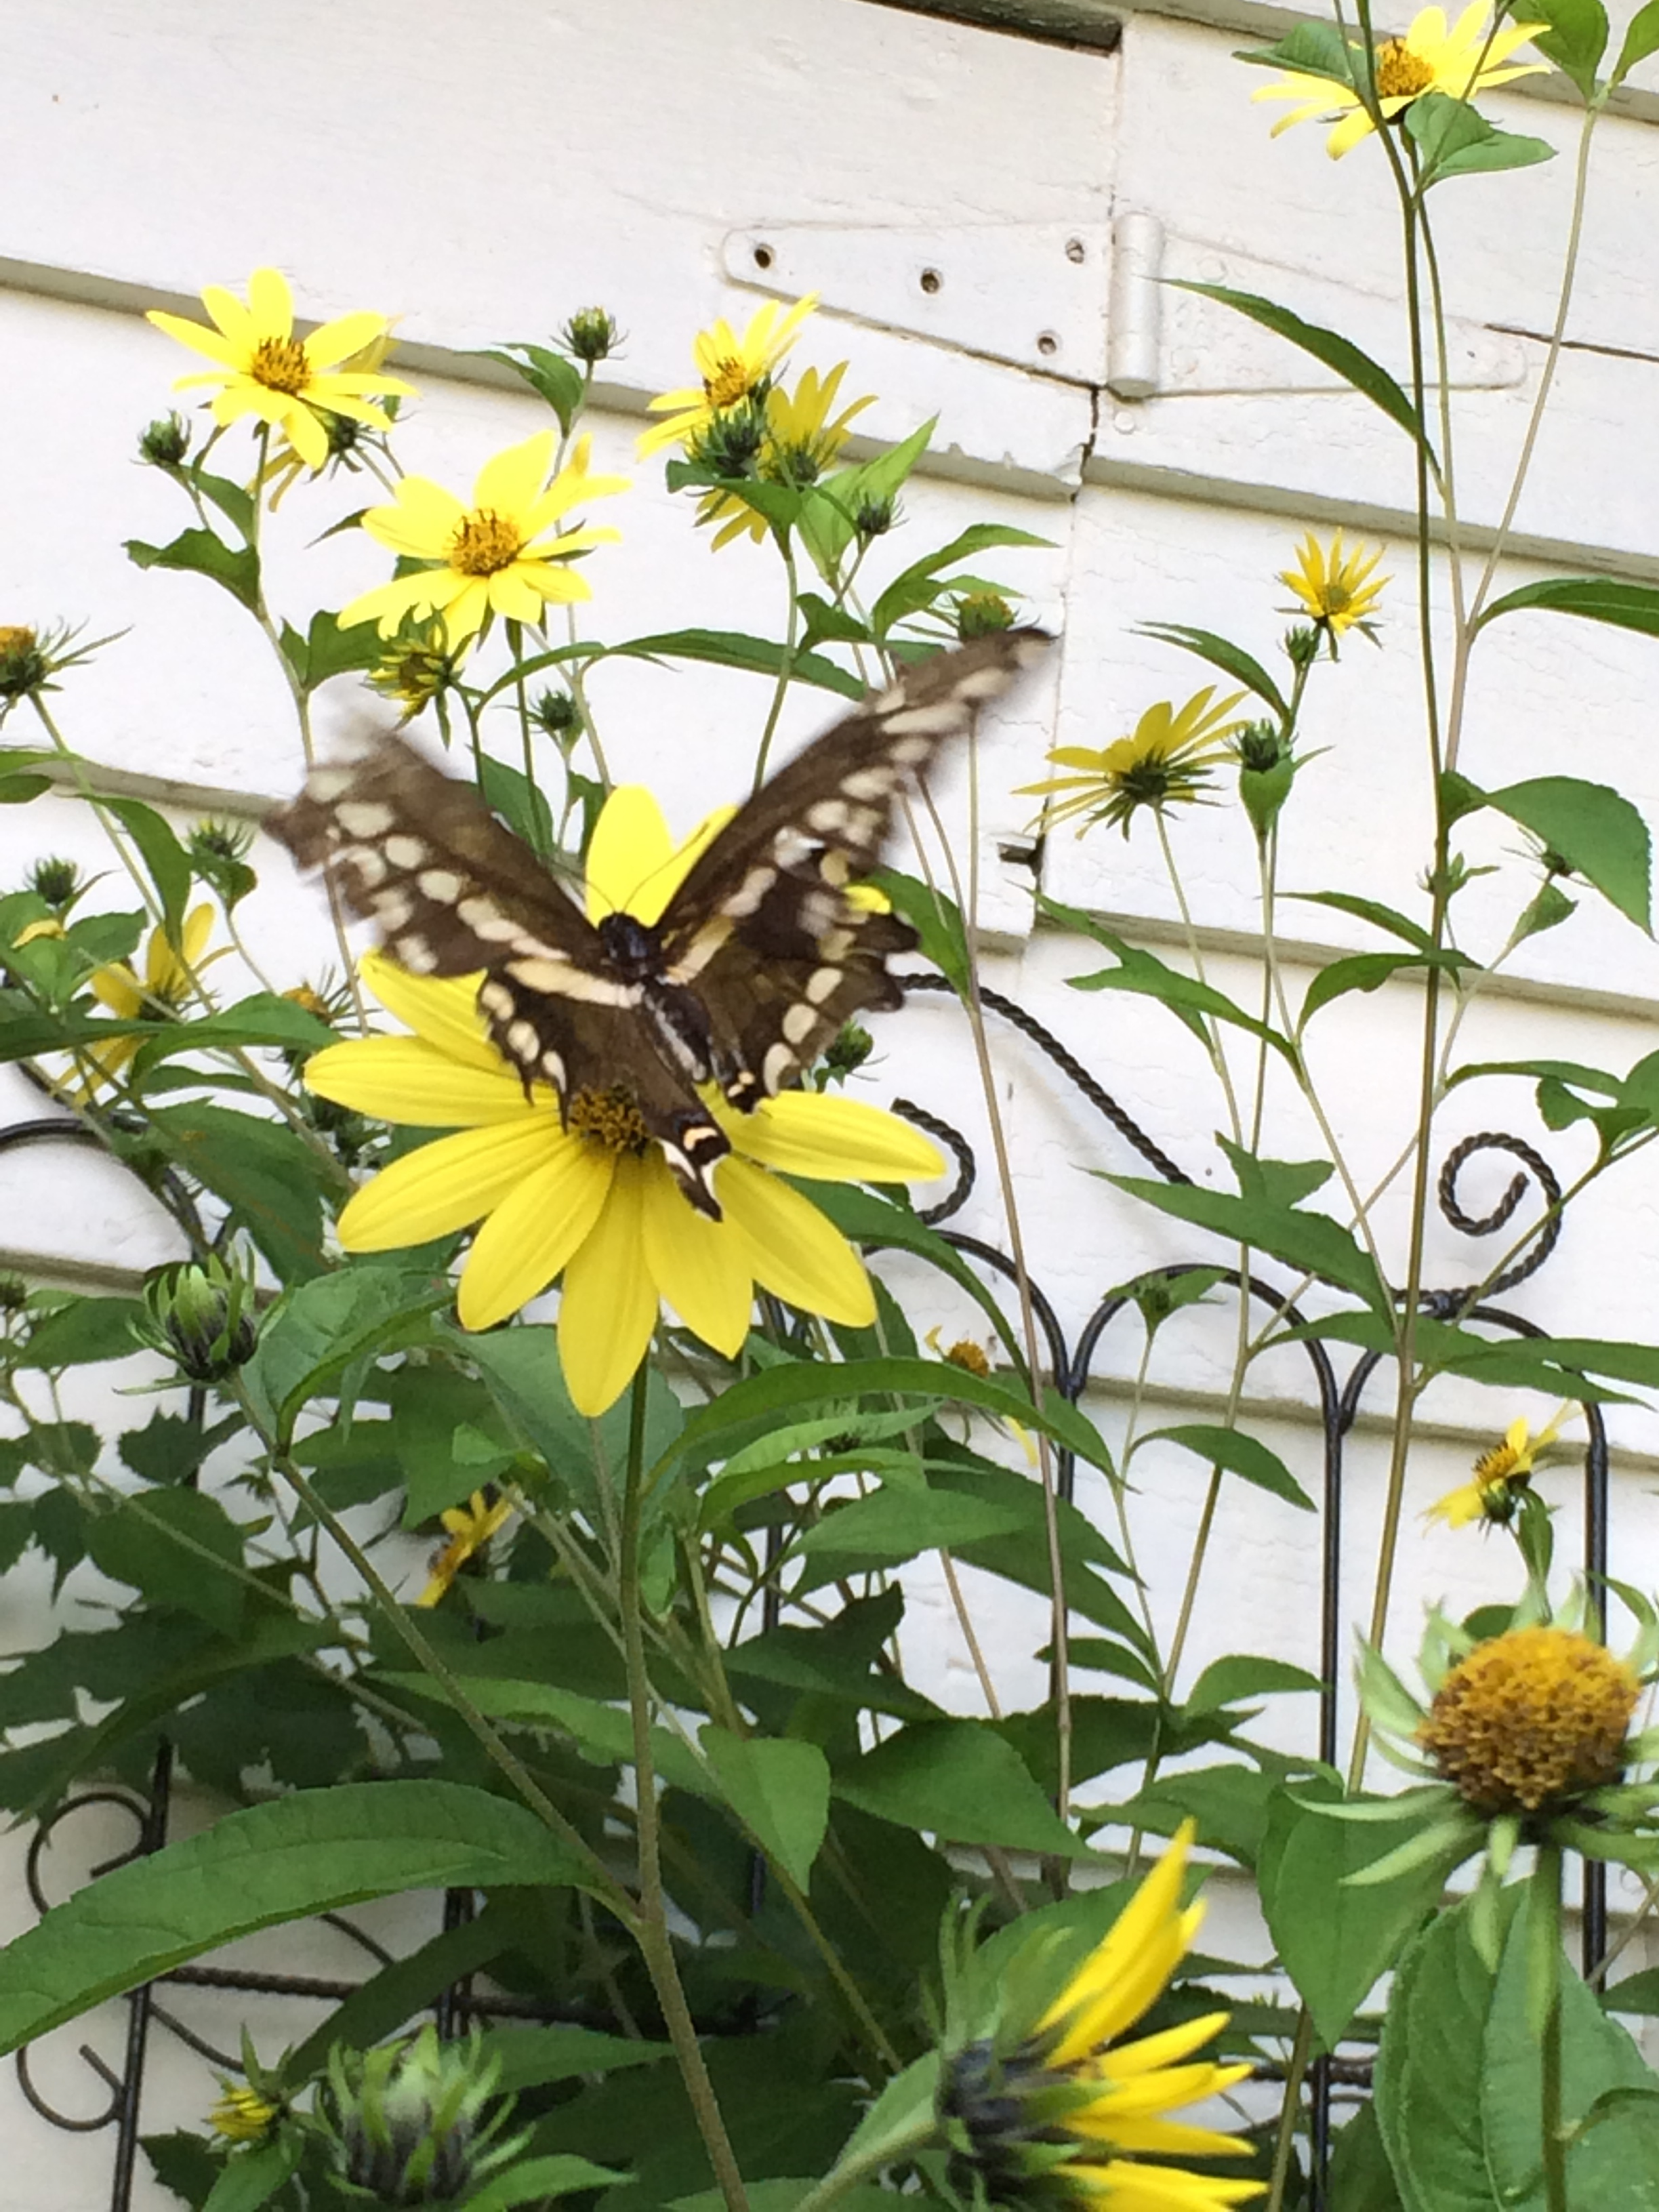 Helianthus (perennial sunflower) and butterfly.